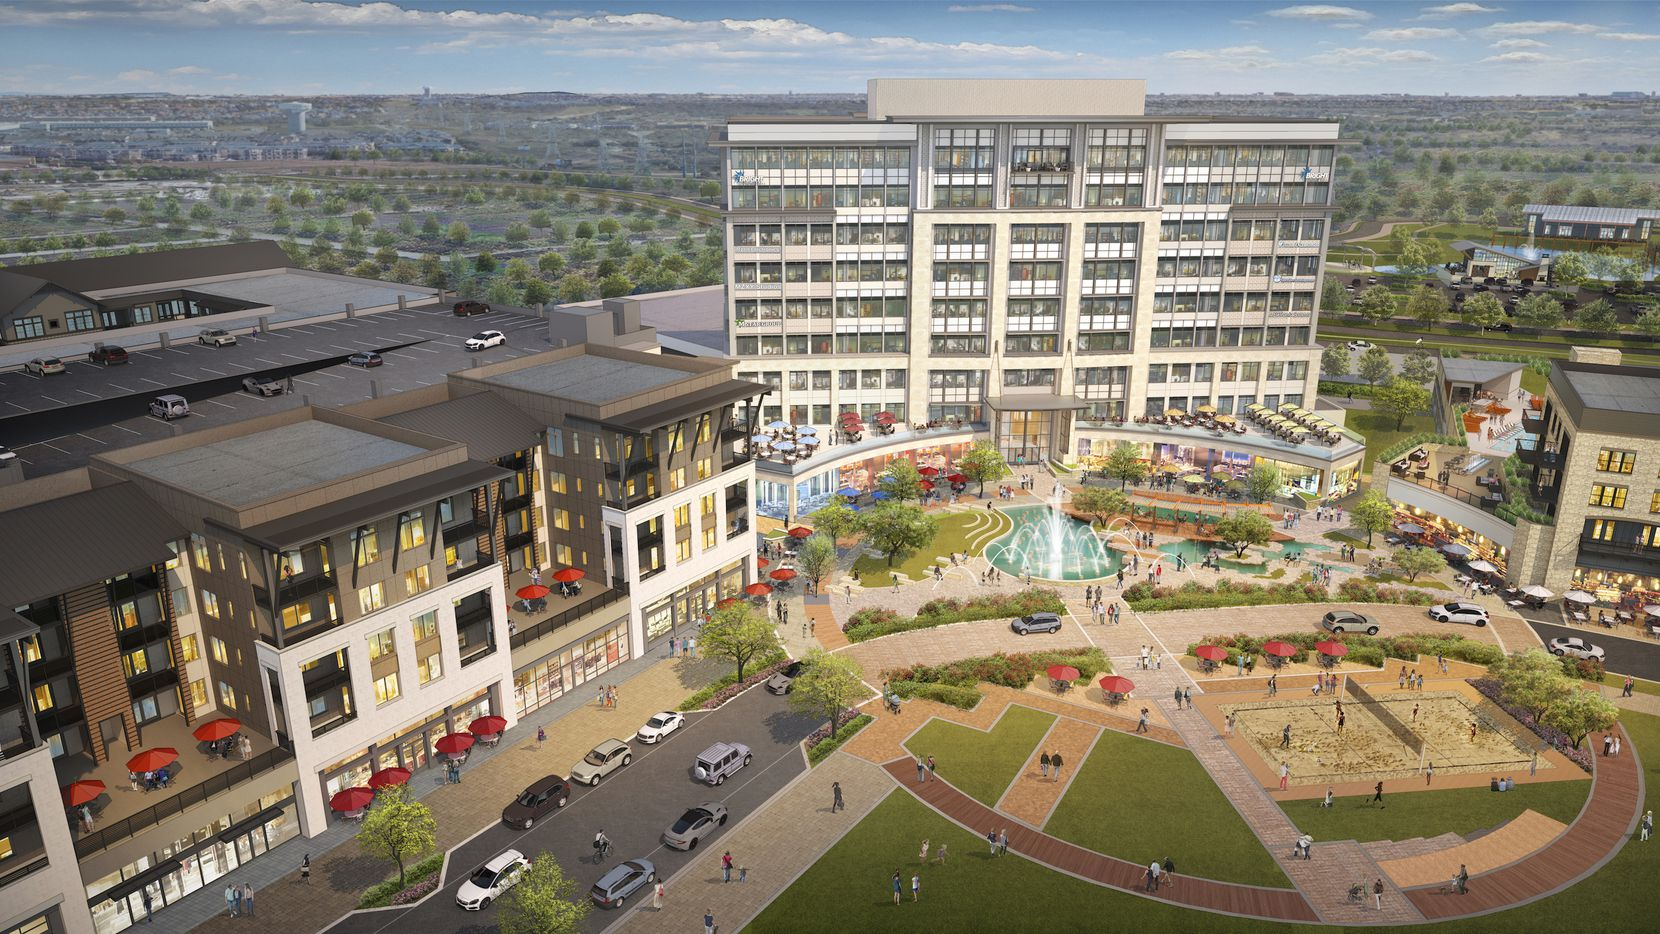 The next phase of the Realm at Castle Hills will include apartments and retail space.